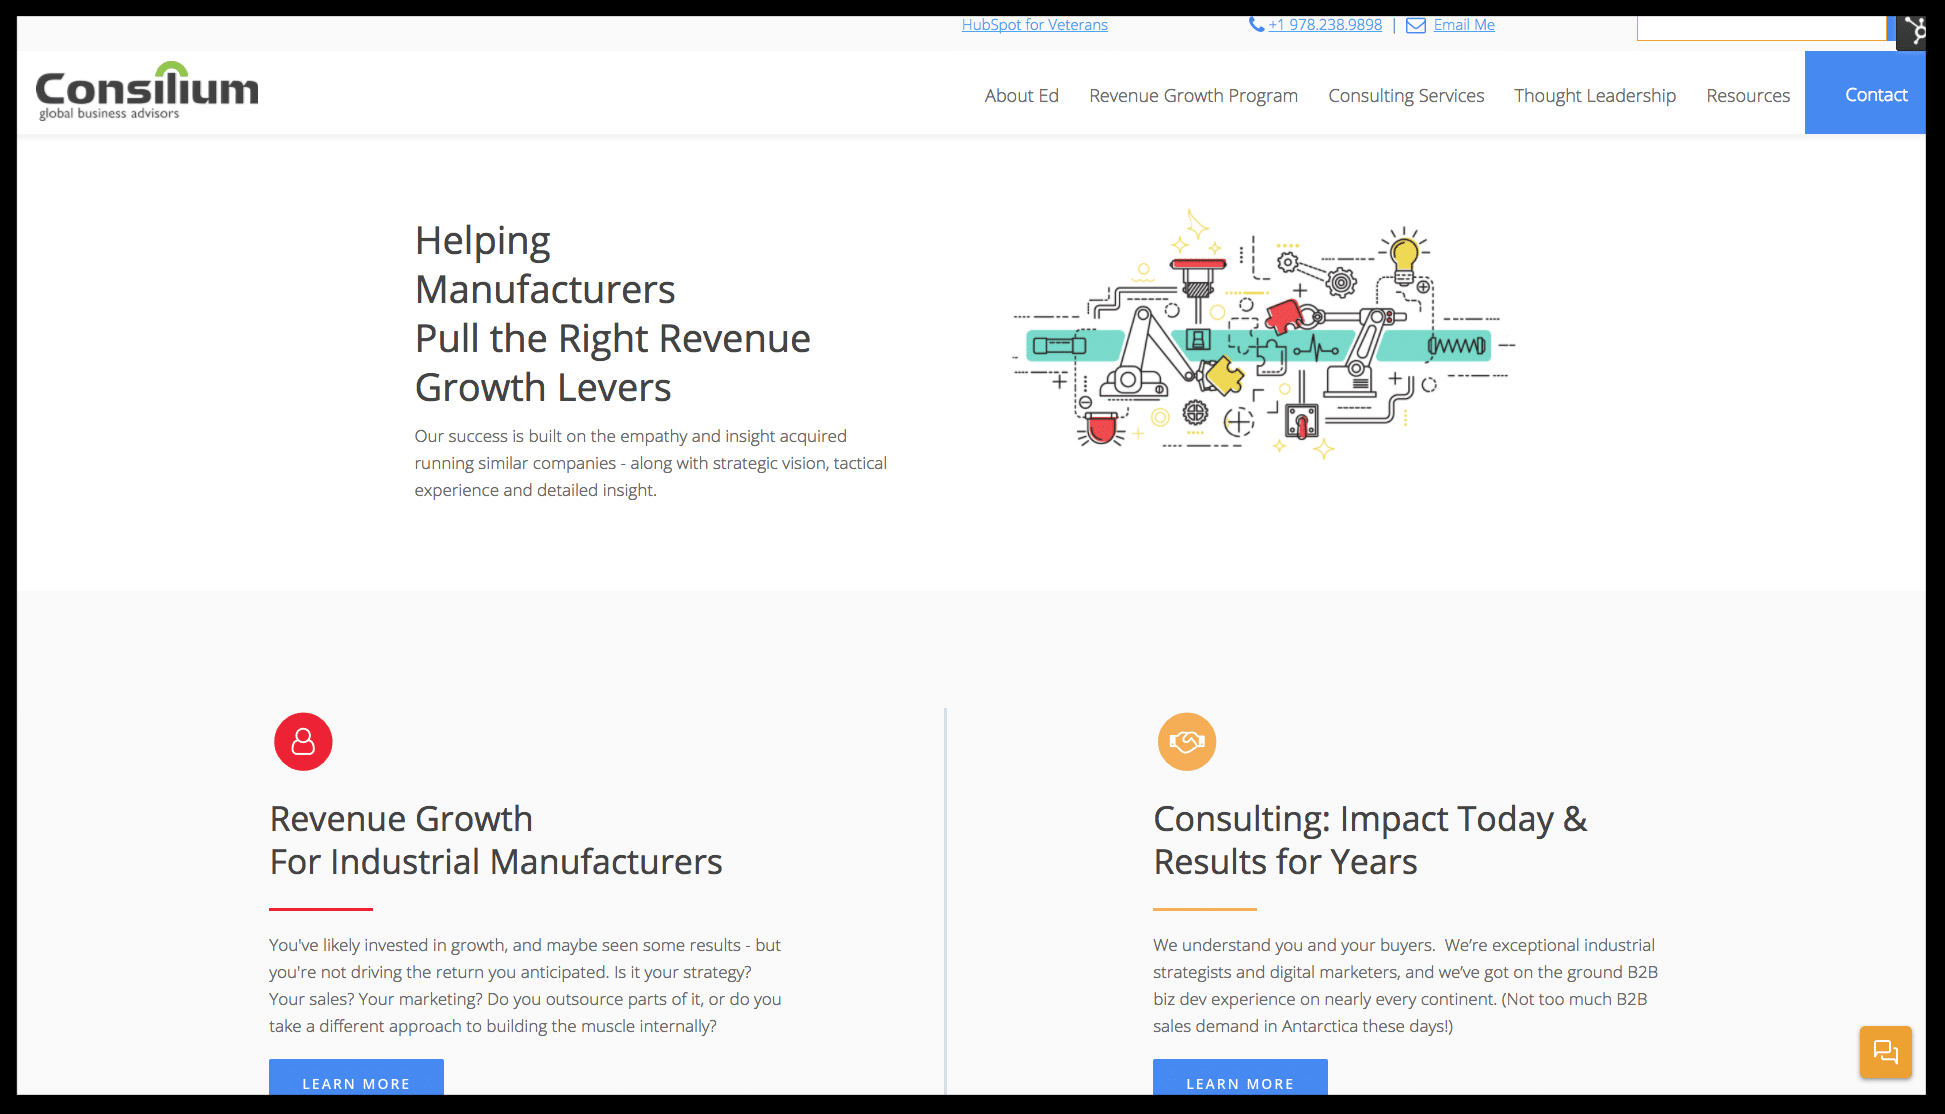 strategy consultant and revenue growth advisor ed marsh launches new website